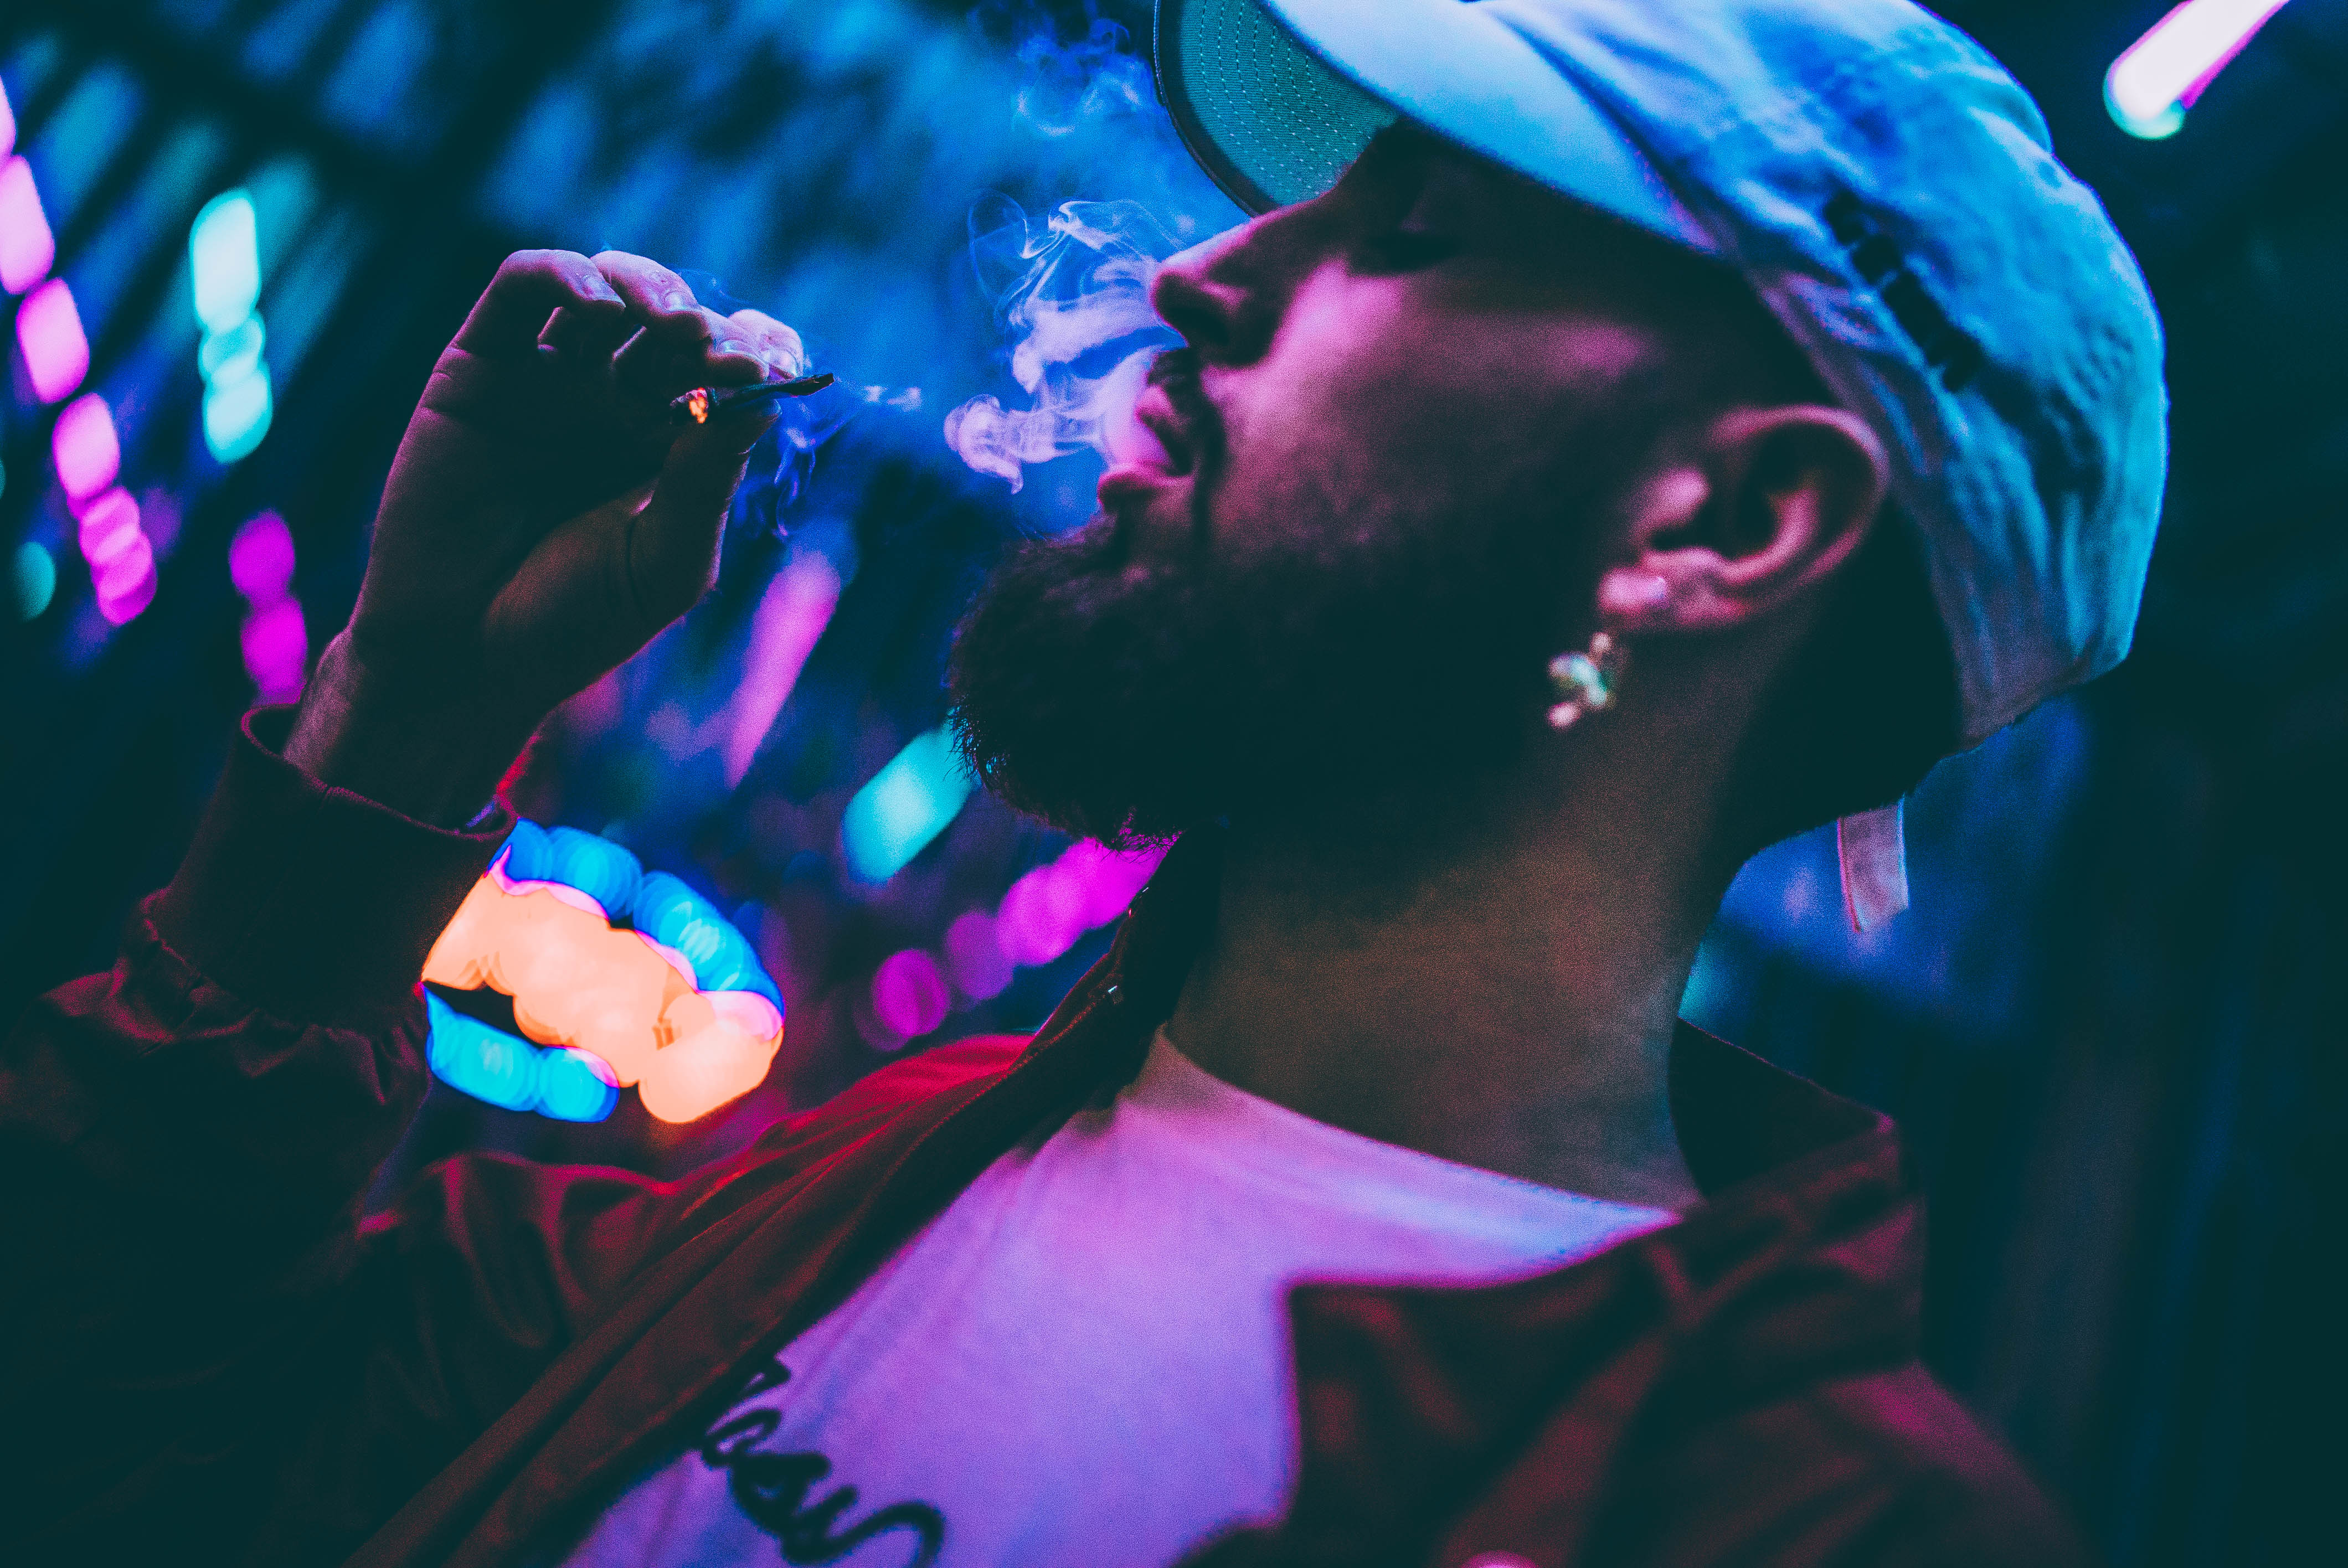 Video: @itsCOOLgrande - I Been Smoking Weed All Day - Hustle & Grynd